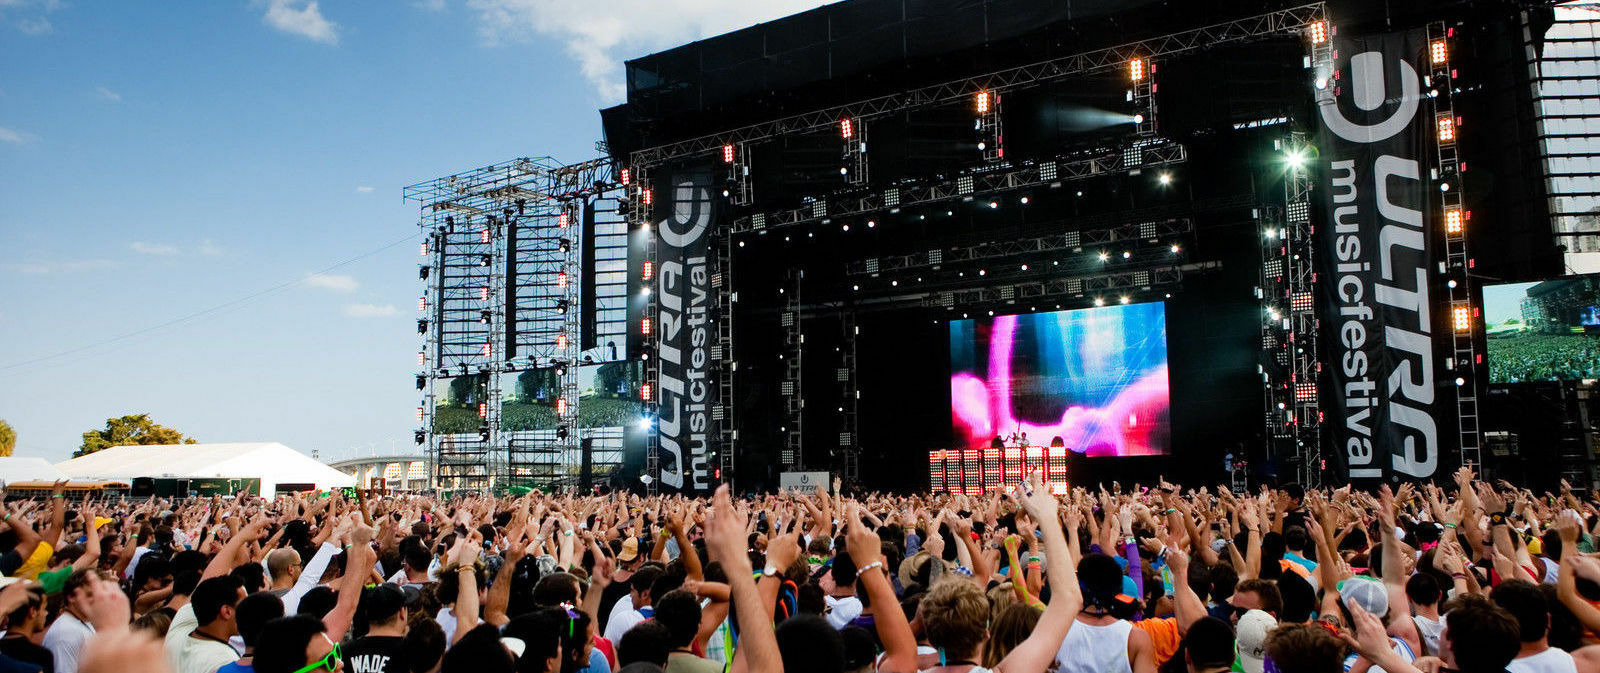 Ultra Music Festival 3 Day Pass Tickets (18+ Event, March 23-25)